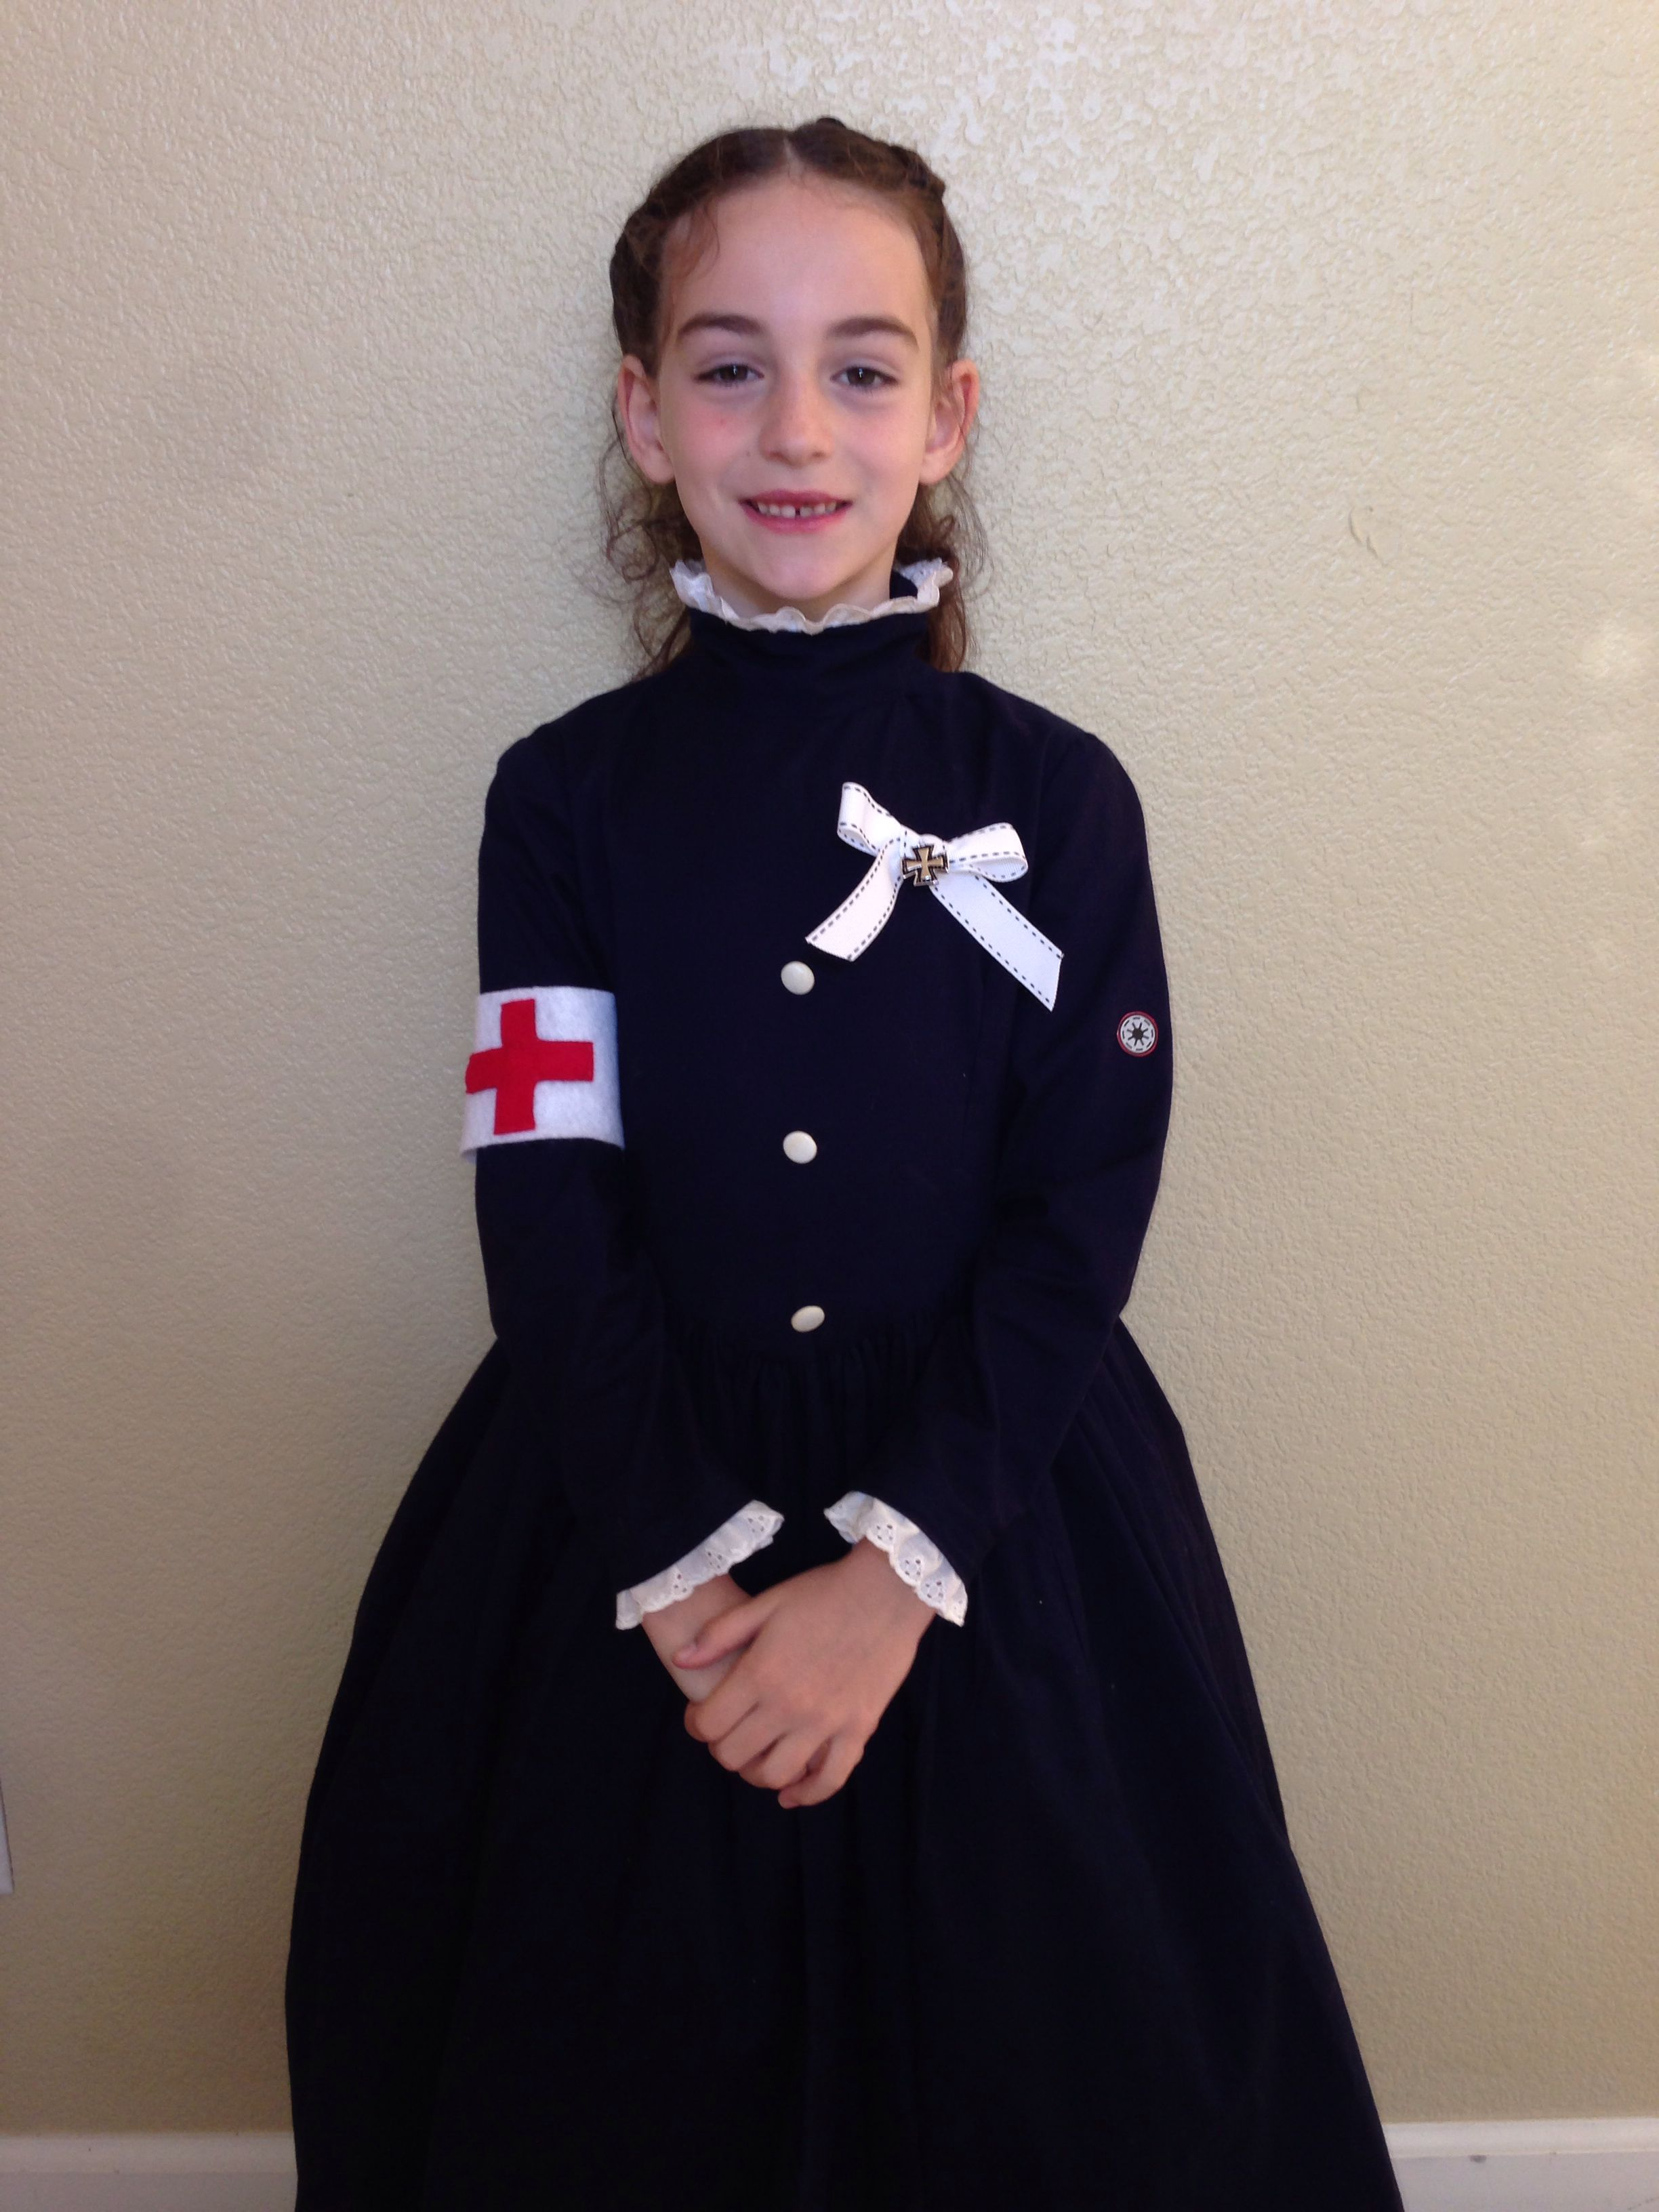 clara barton costume | kid related ideas in 2018 | pinterest | clara